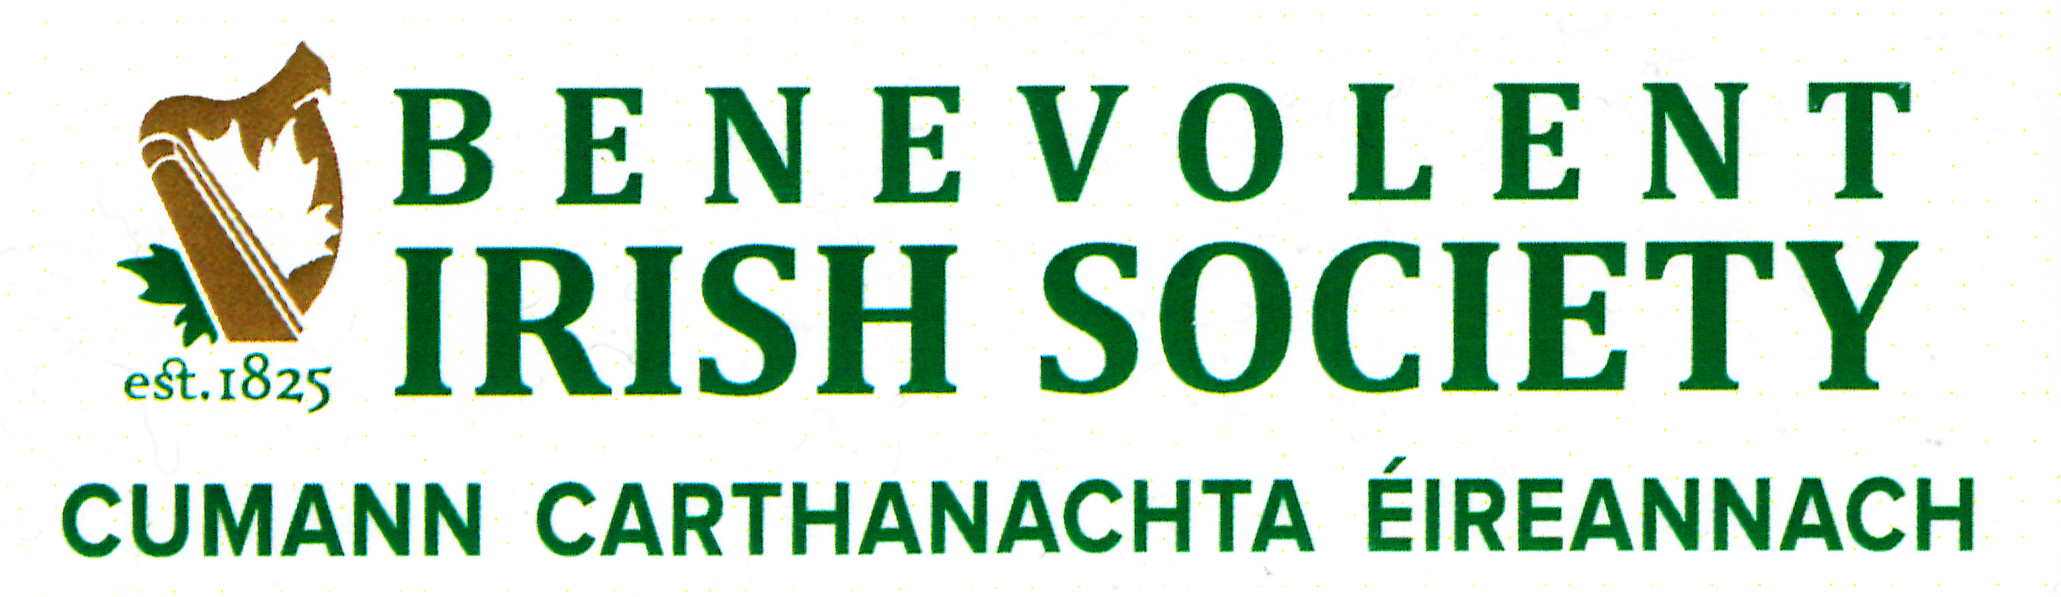 Benevolent Irish Society - Lecture Series Collection